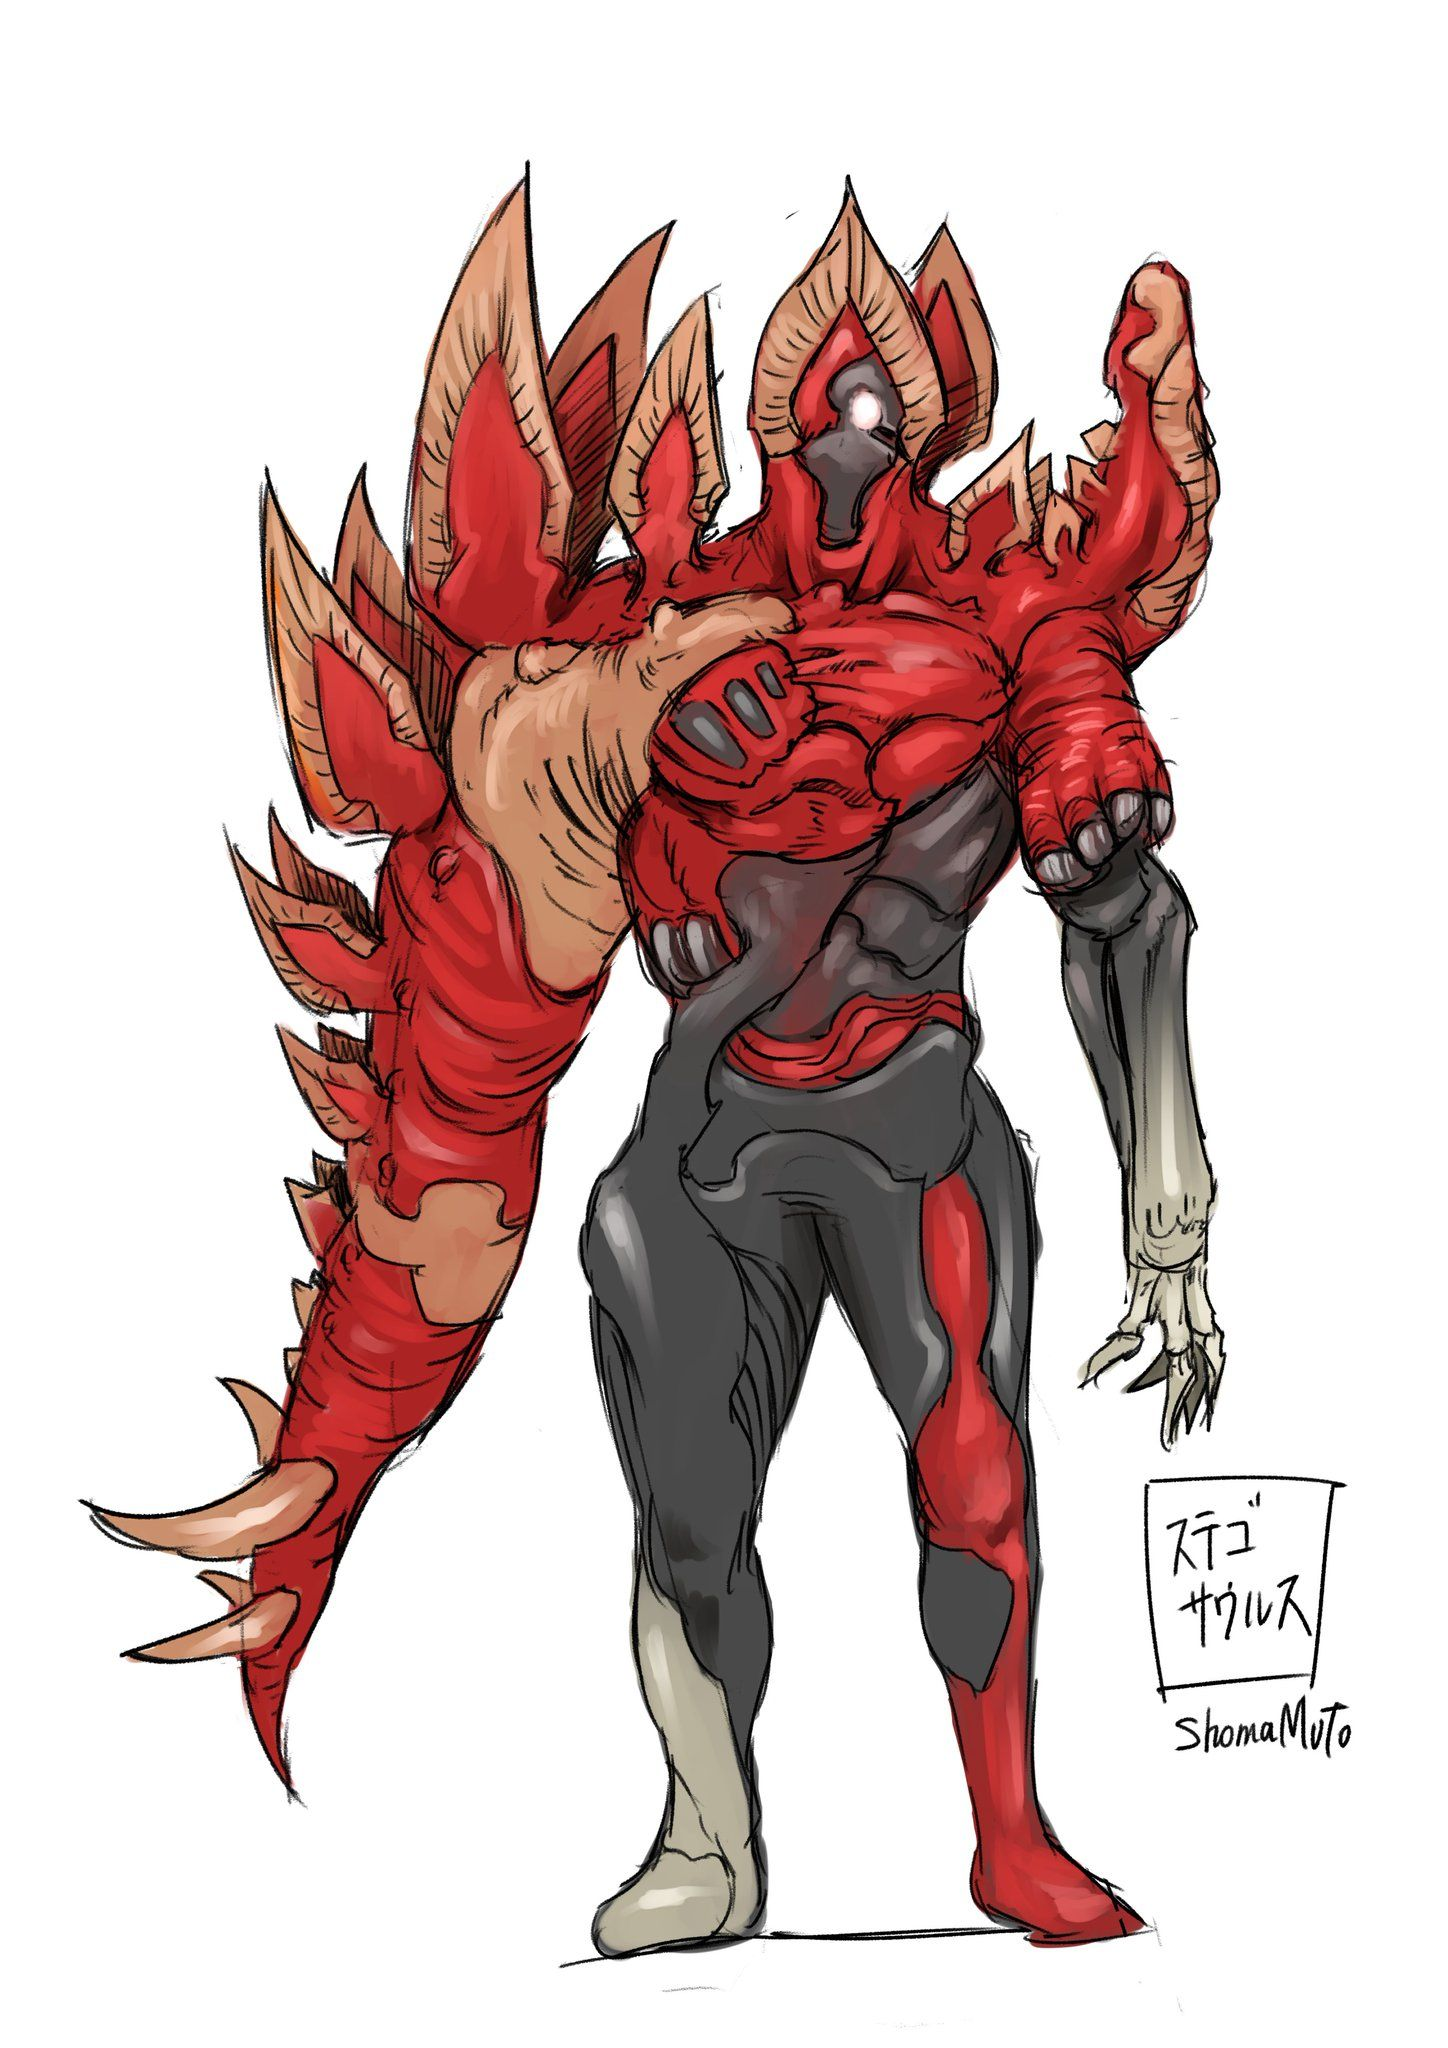 pin by relyasg17 on art and pics i like villain character monster go kamen rider